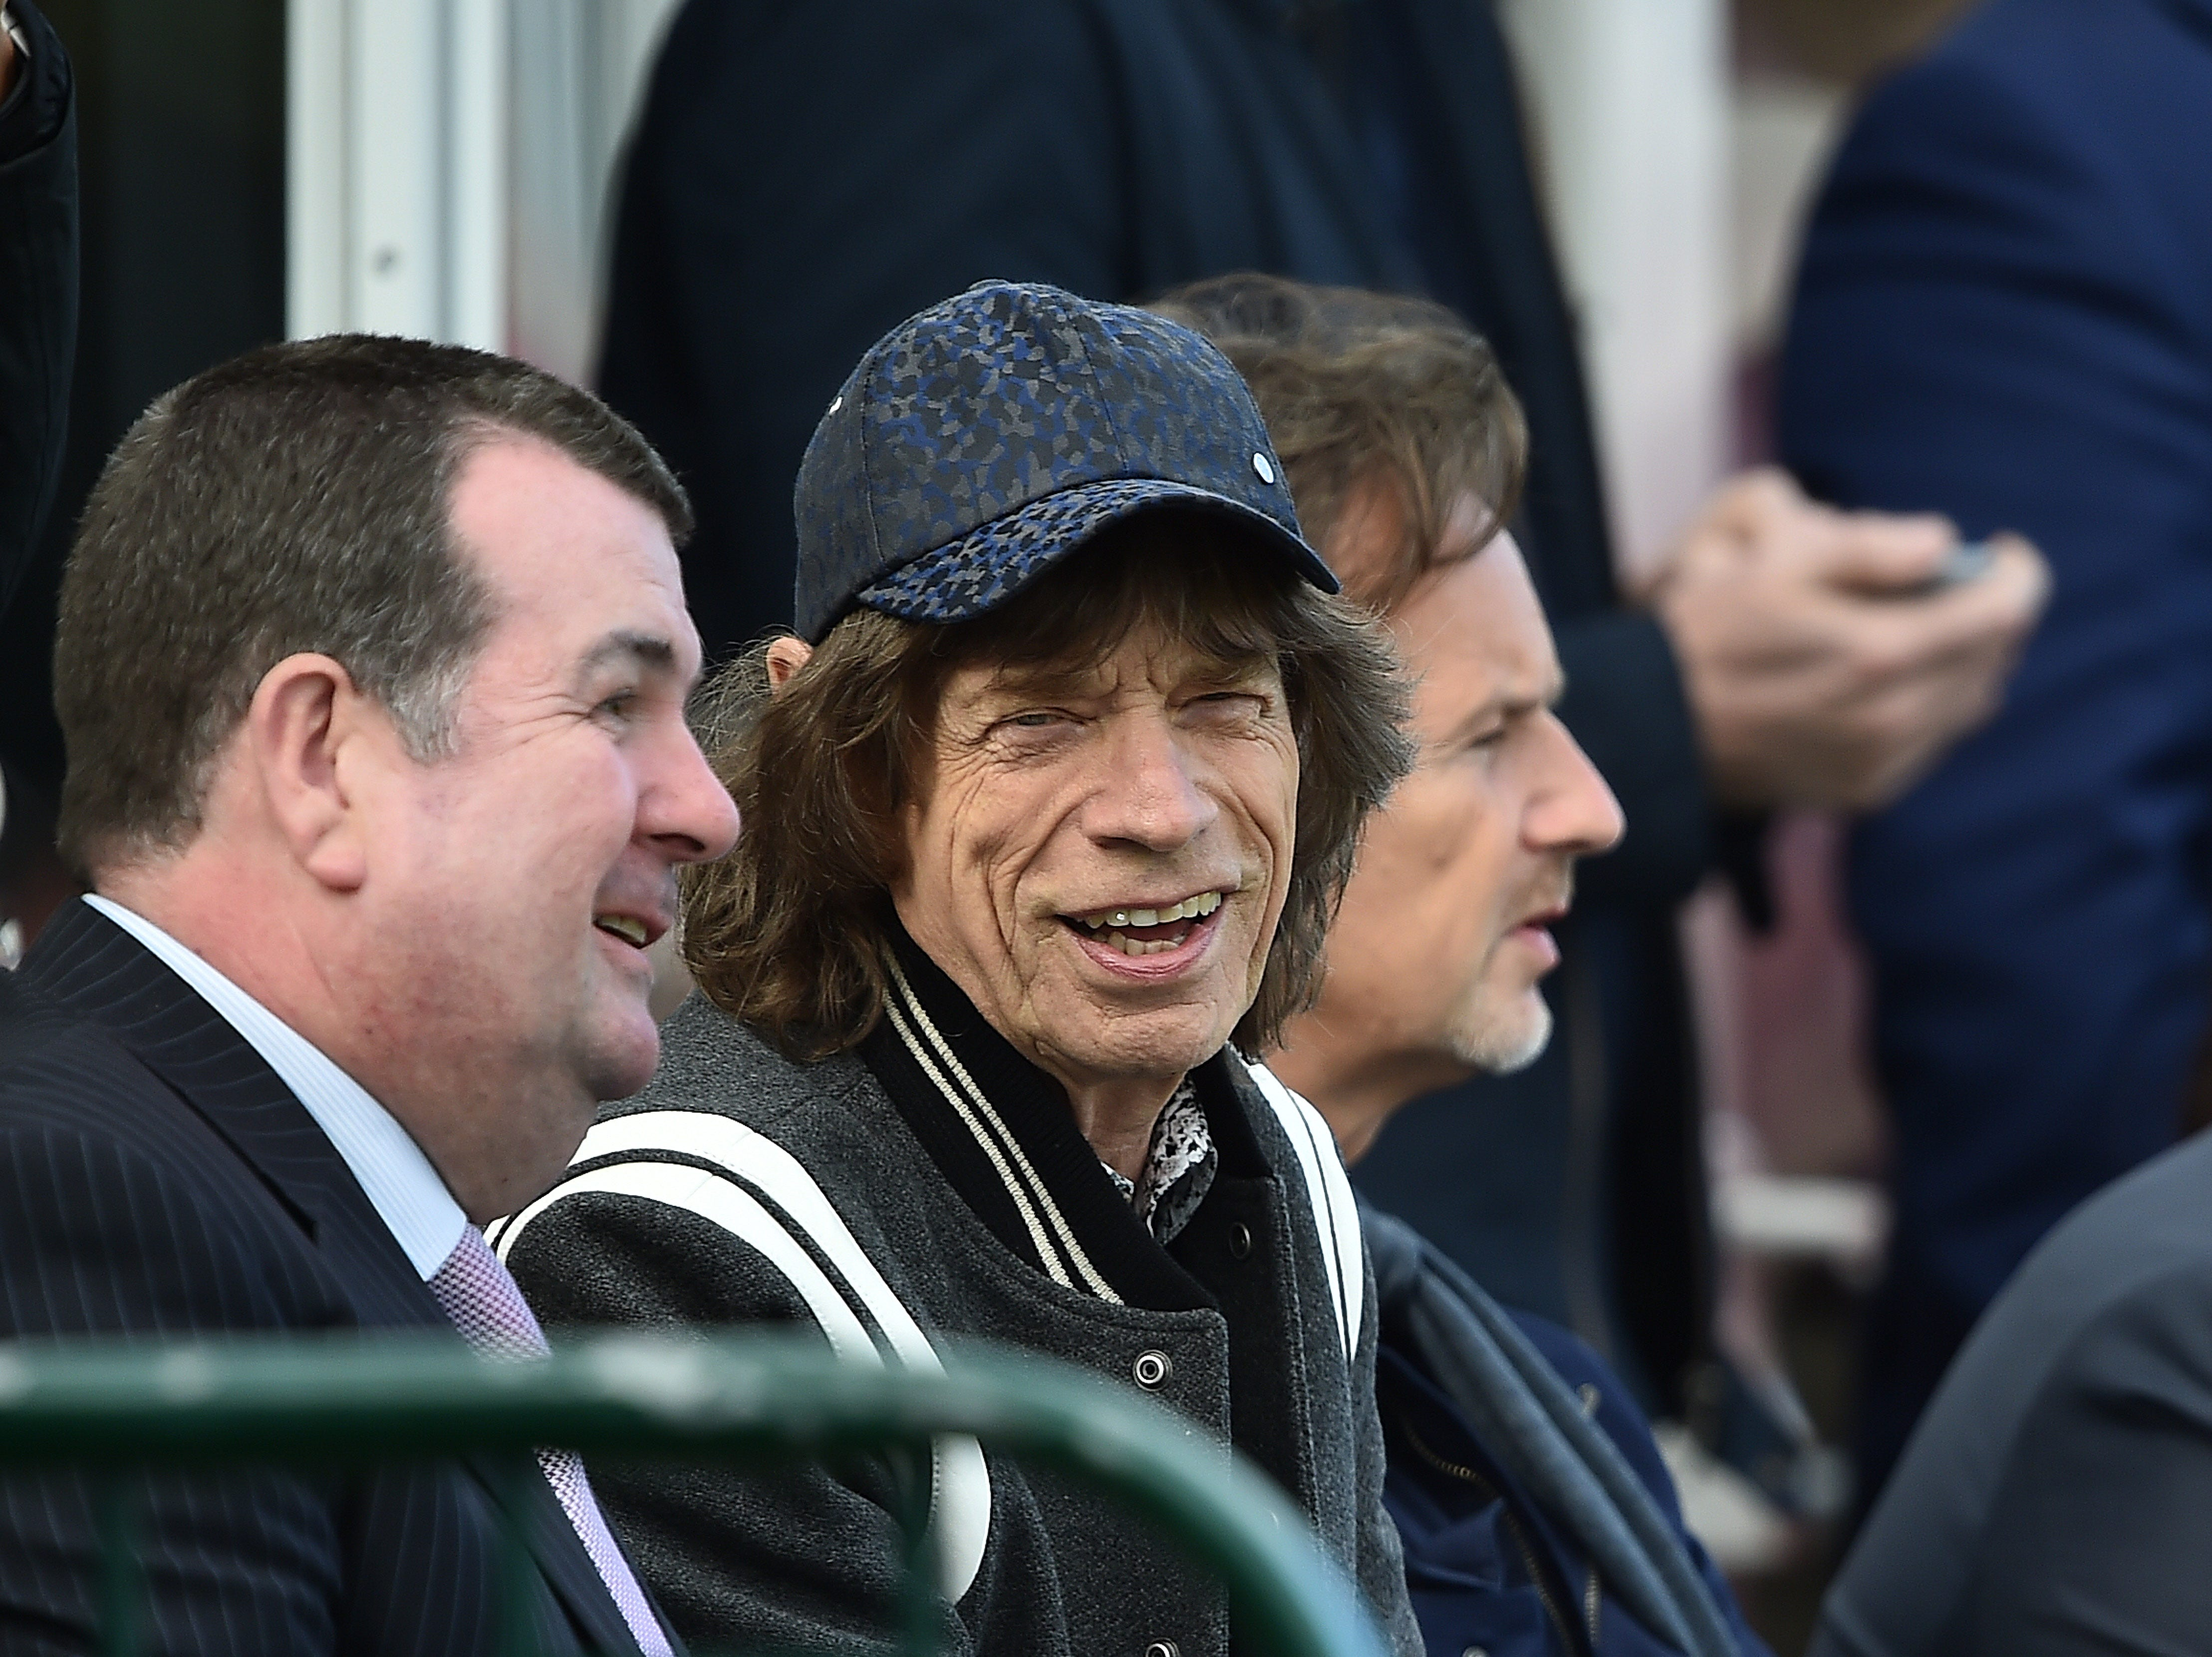 MALAHIDE, IRELAND - MAY 13: Sir Mick Jagger watches the afternoon's play during the third day of the test cricket match between Ireland and Pakistan on May 13, 2018 in Malahide, Ireland. (Photo by Charles McQuillan/Getty Images) ORG XMIT: 775163746 ORIG FILE ID: 958106602